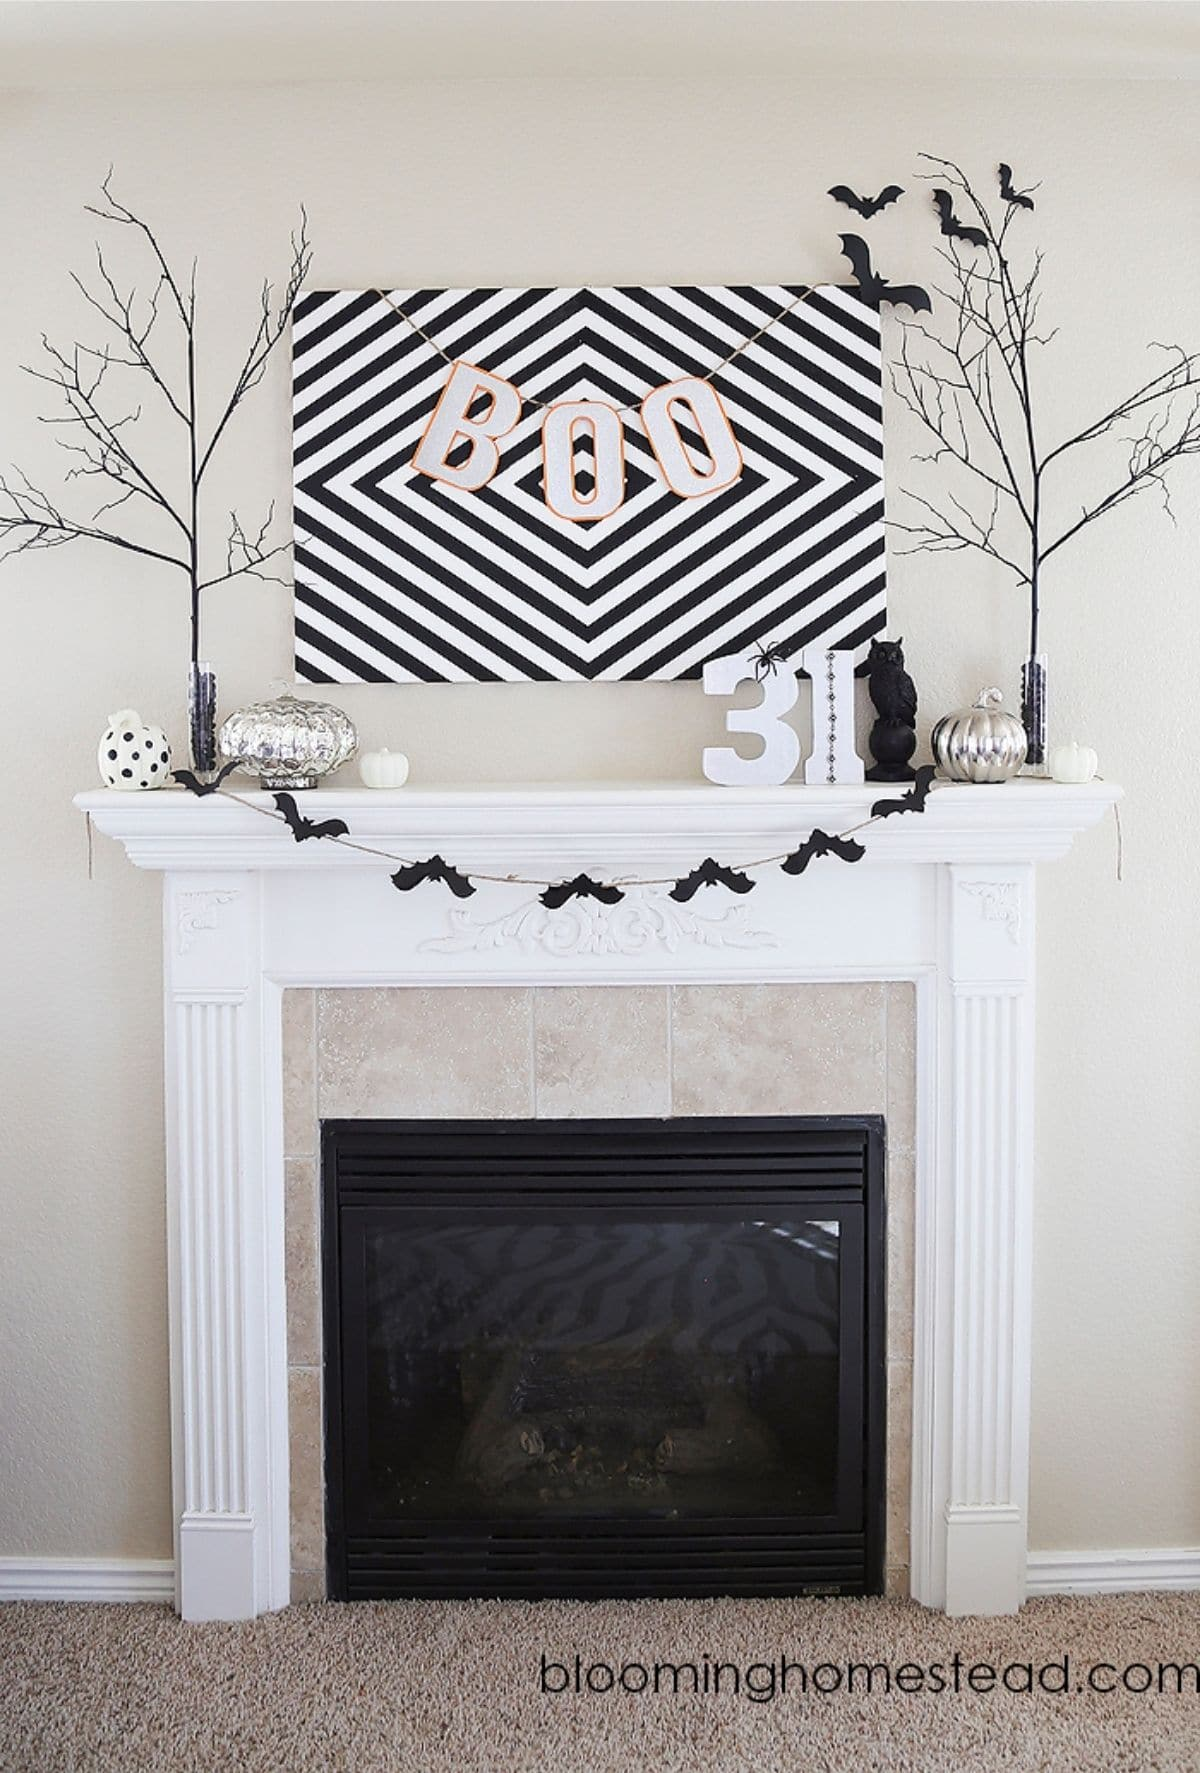 mantel with bat banner, trees, 31, and picture that says BOO